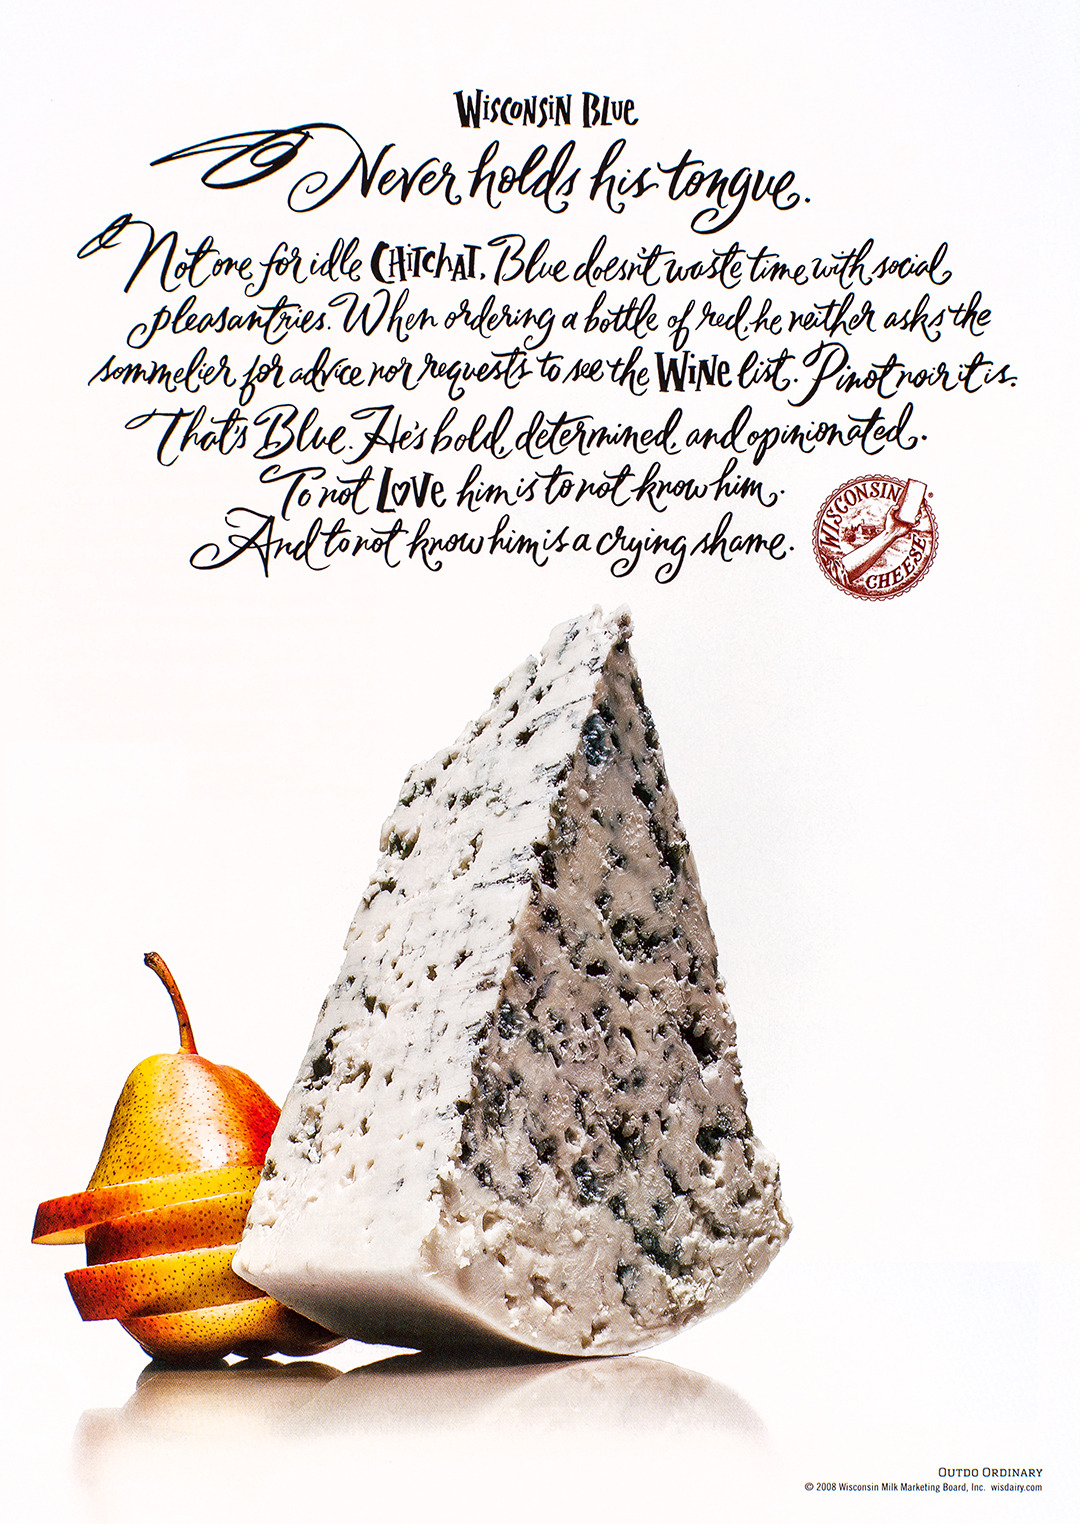 Wisconsin Cheese Advertisement - Gourmet: November 2008